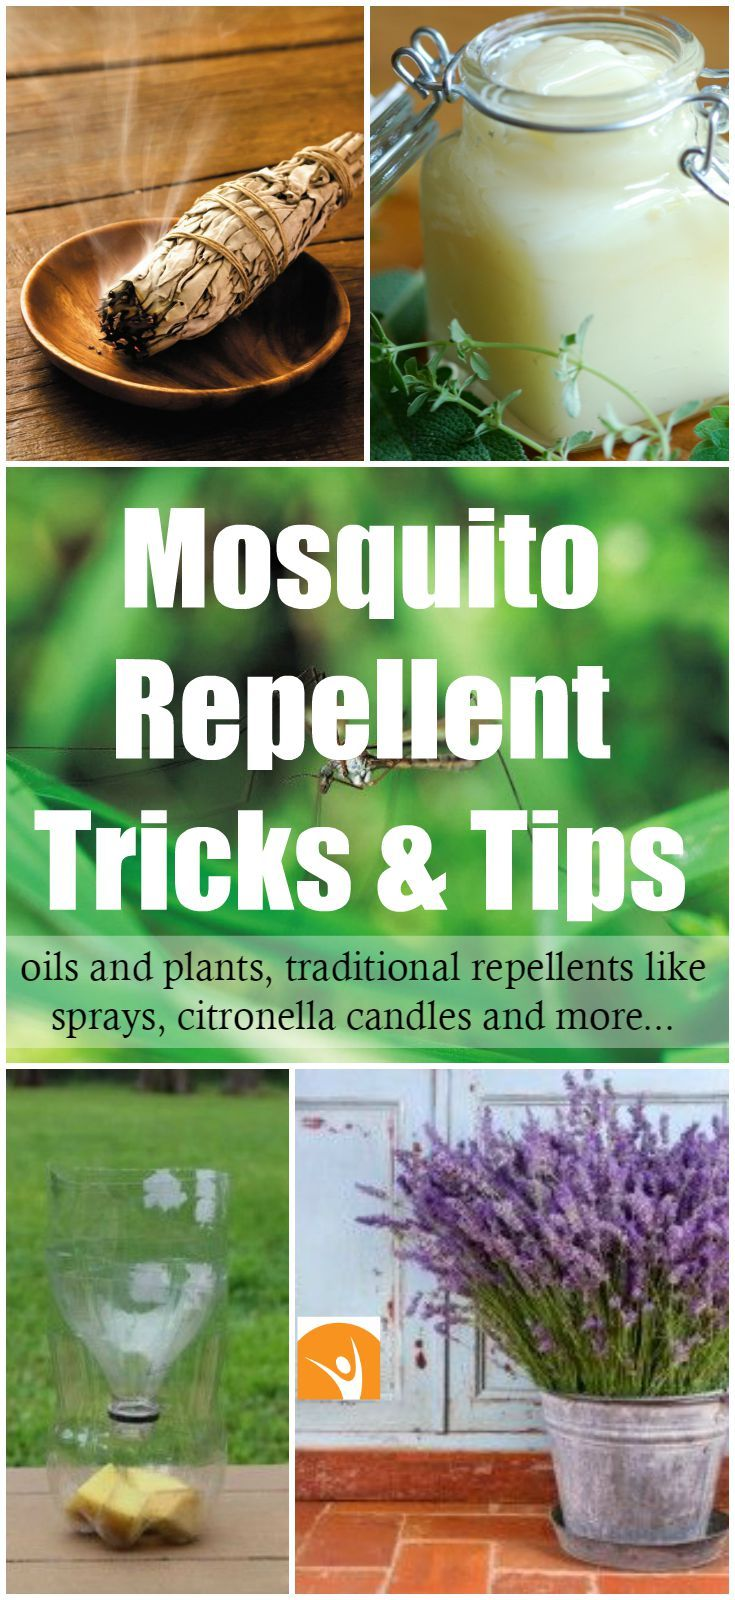 How To Get Rid Of Mosquitoes With Easy Natural Remes Healthy Food Mind